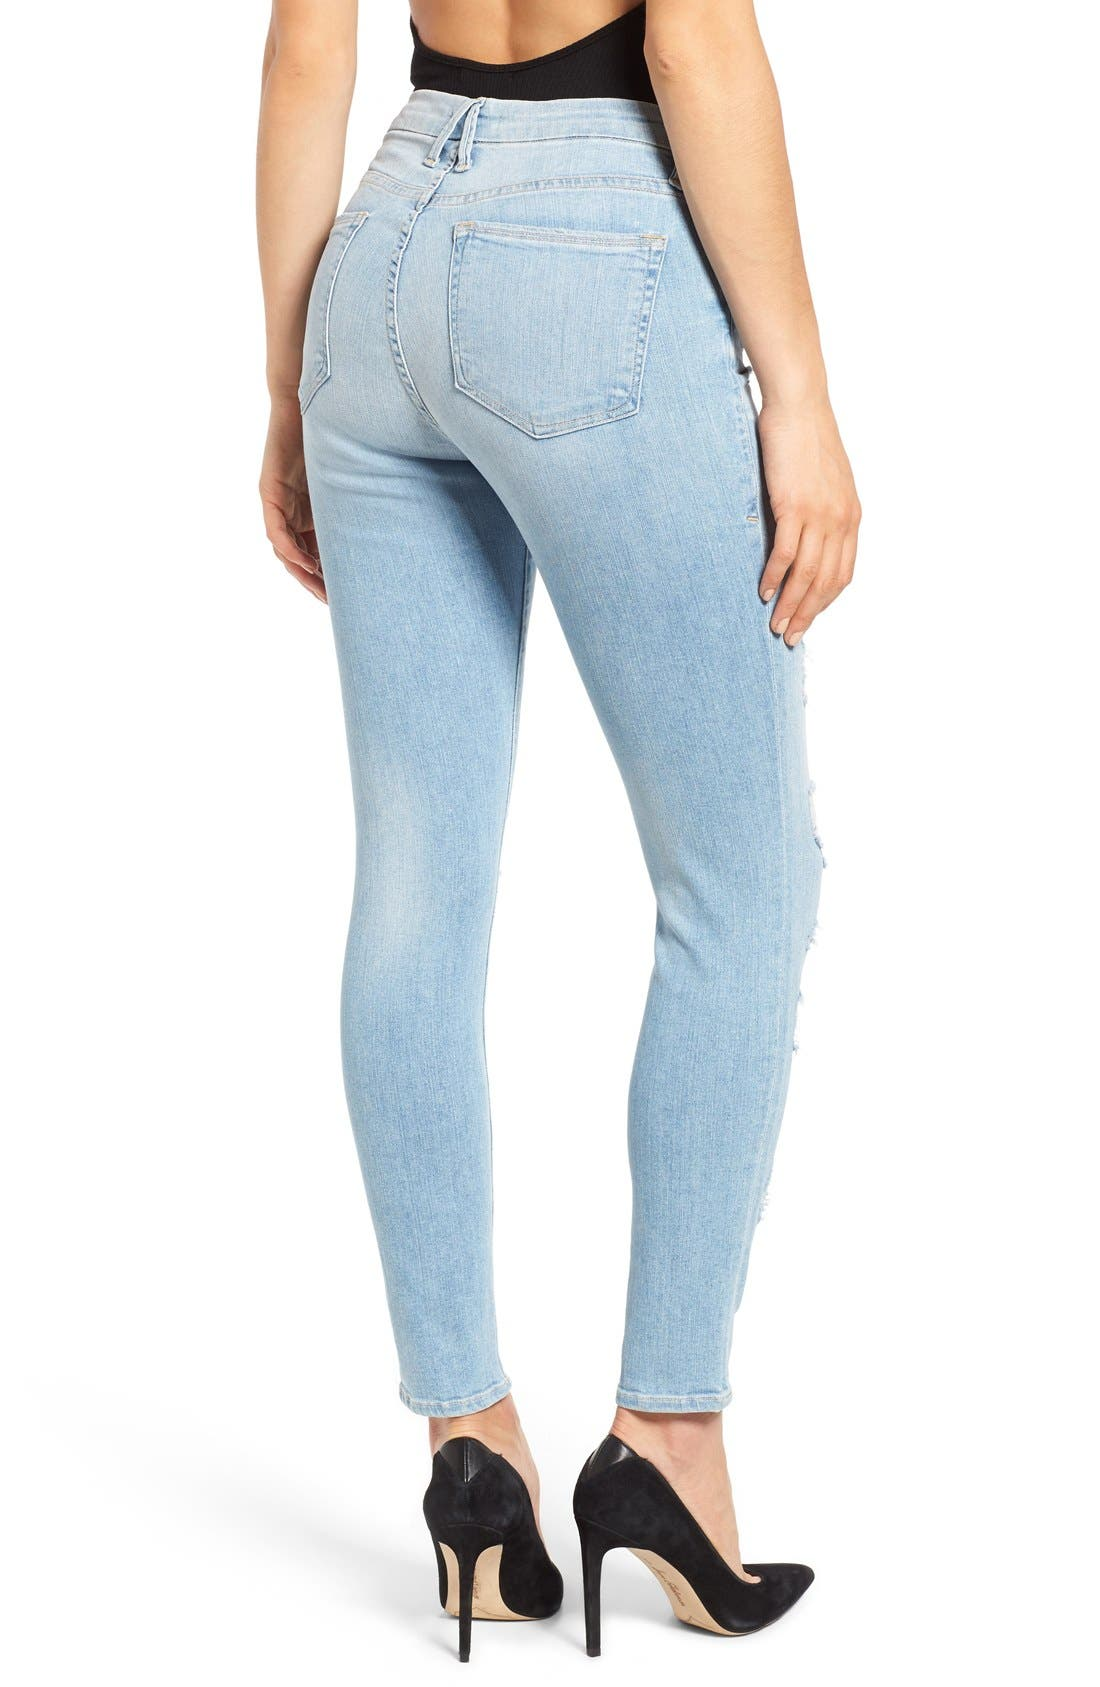 Alternate Image 2  - Good American Good Legs High Rise Ripped Skinny Jeans (Blue 008)